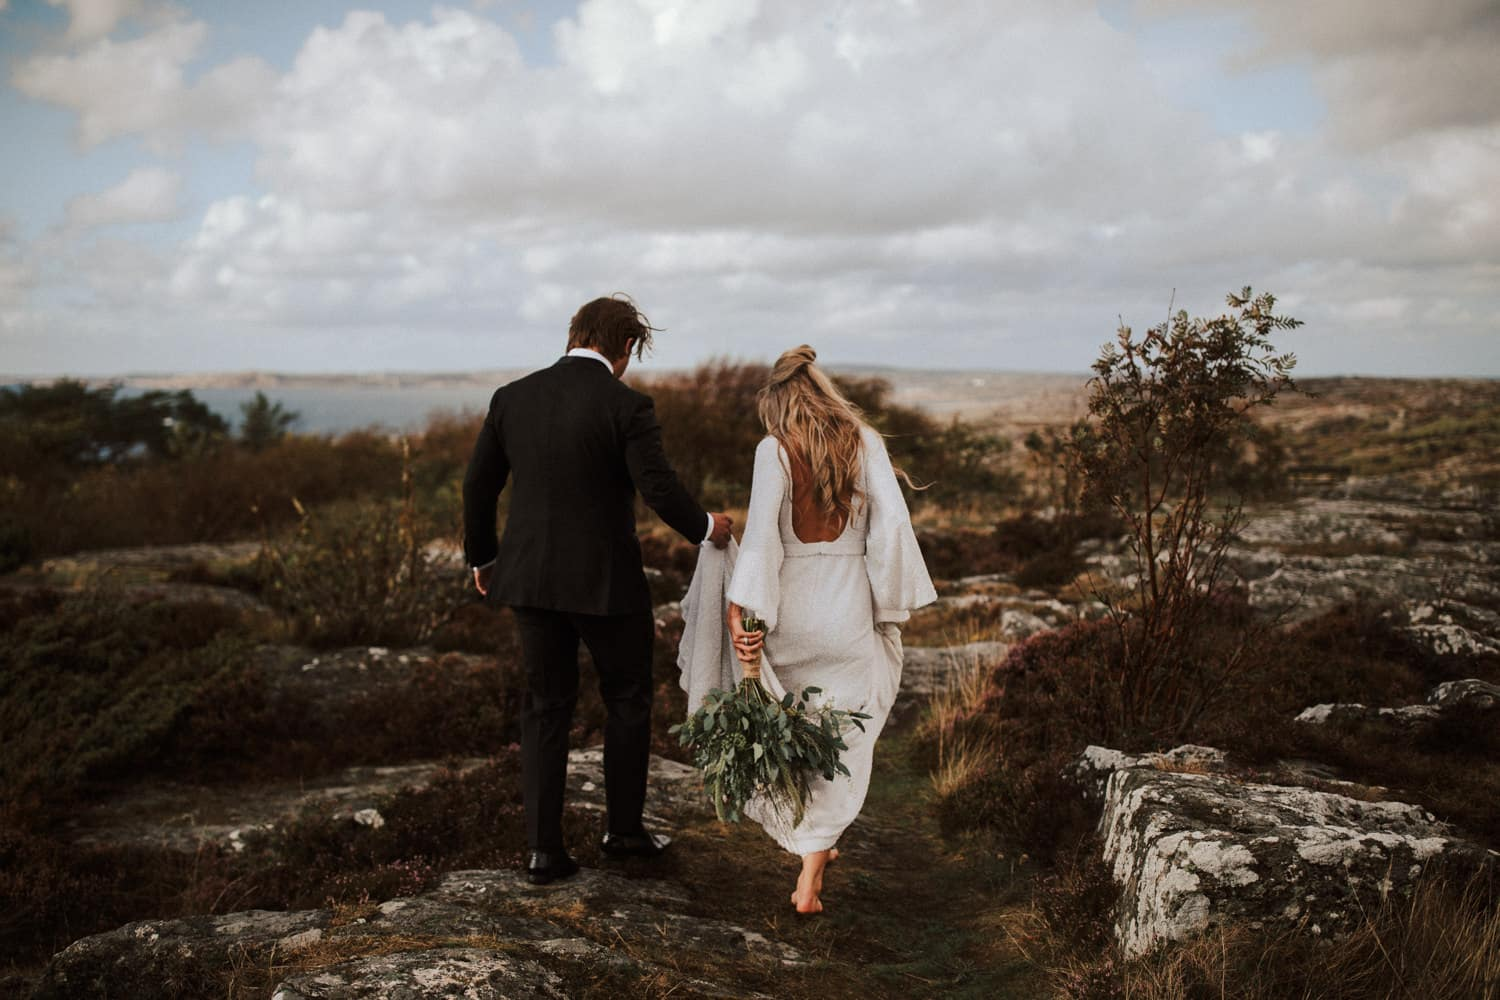 A wedding couple is walking through a rocky path and a meadow.